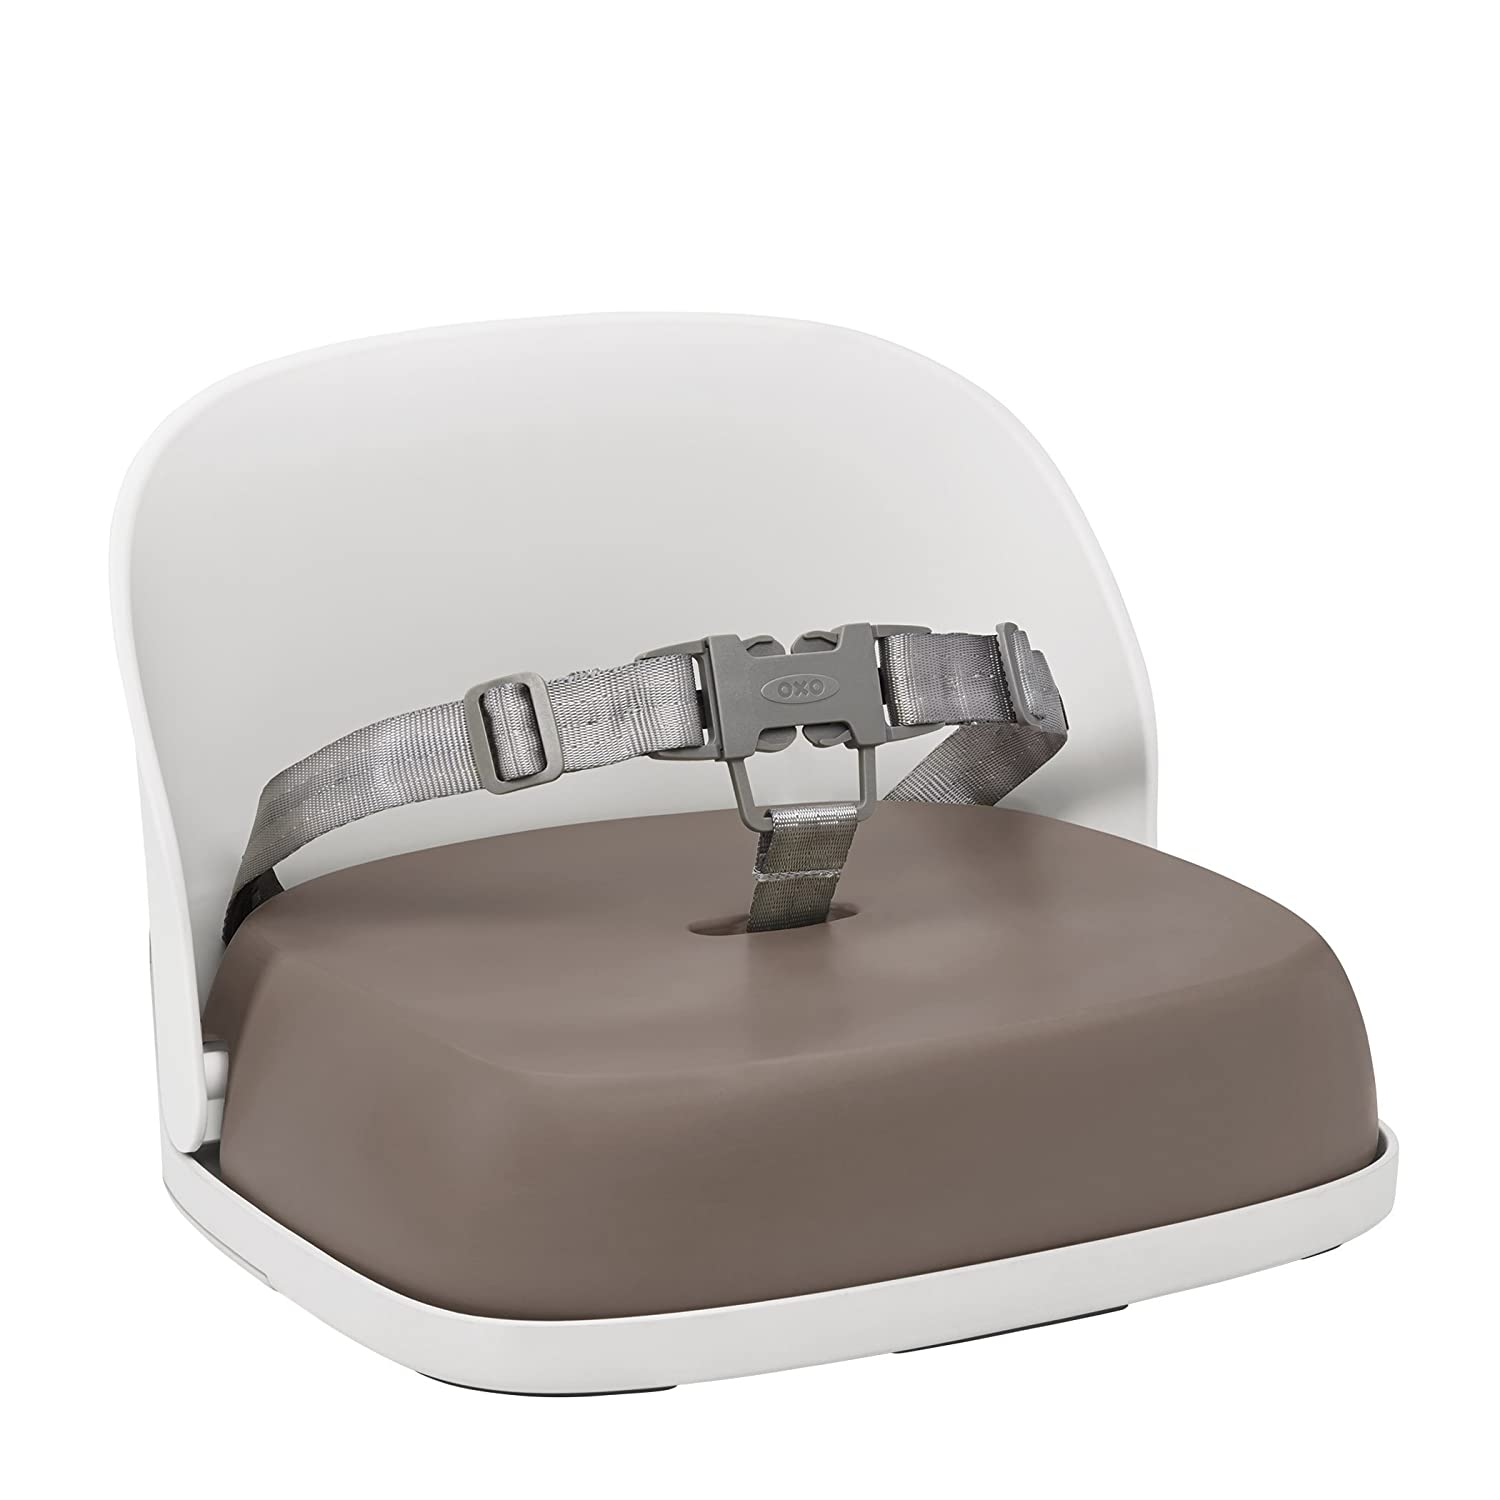 OXO Tot Perch Booster Seat with Straps, Gray 6394300